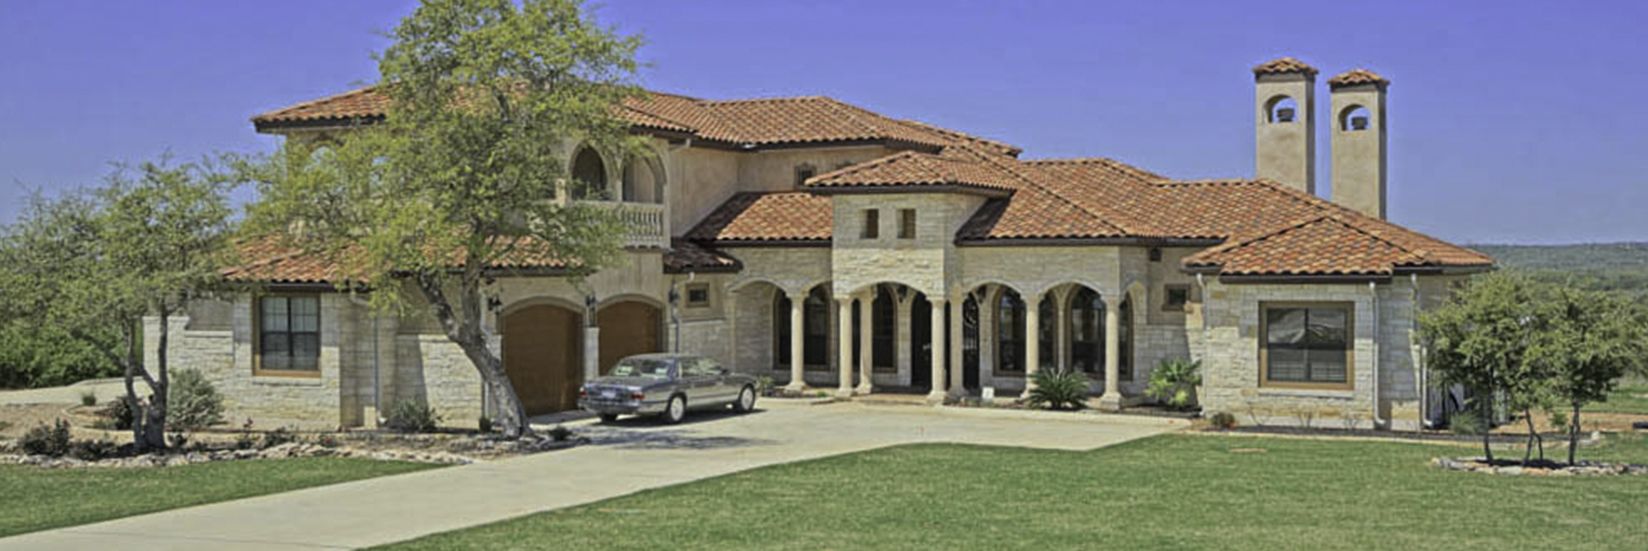 Custom home builder new braunfels san antonio hill for Home builder contractors